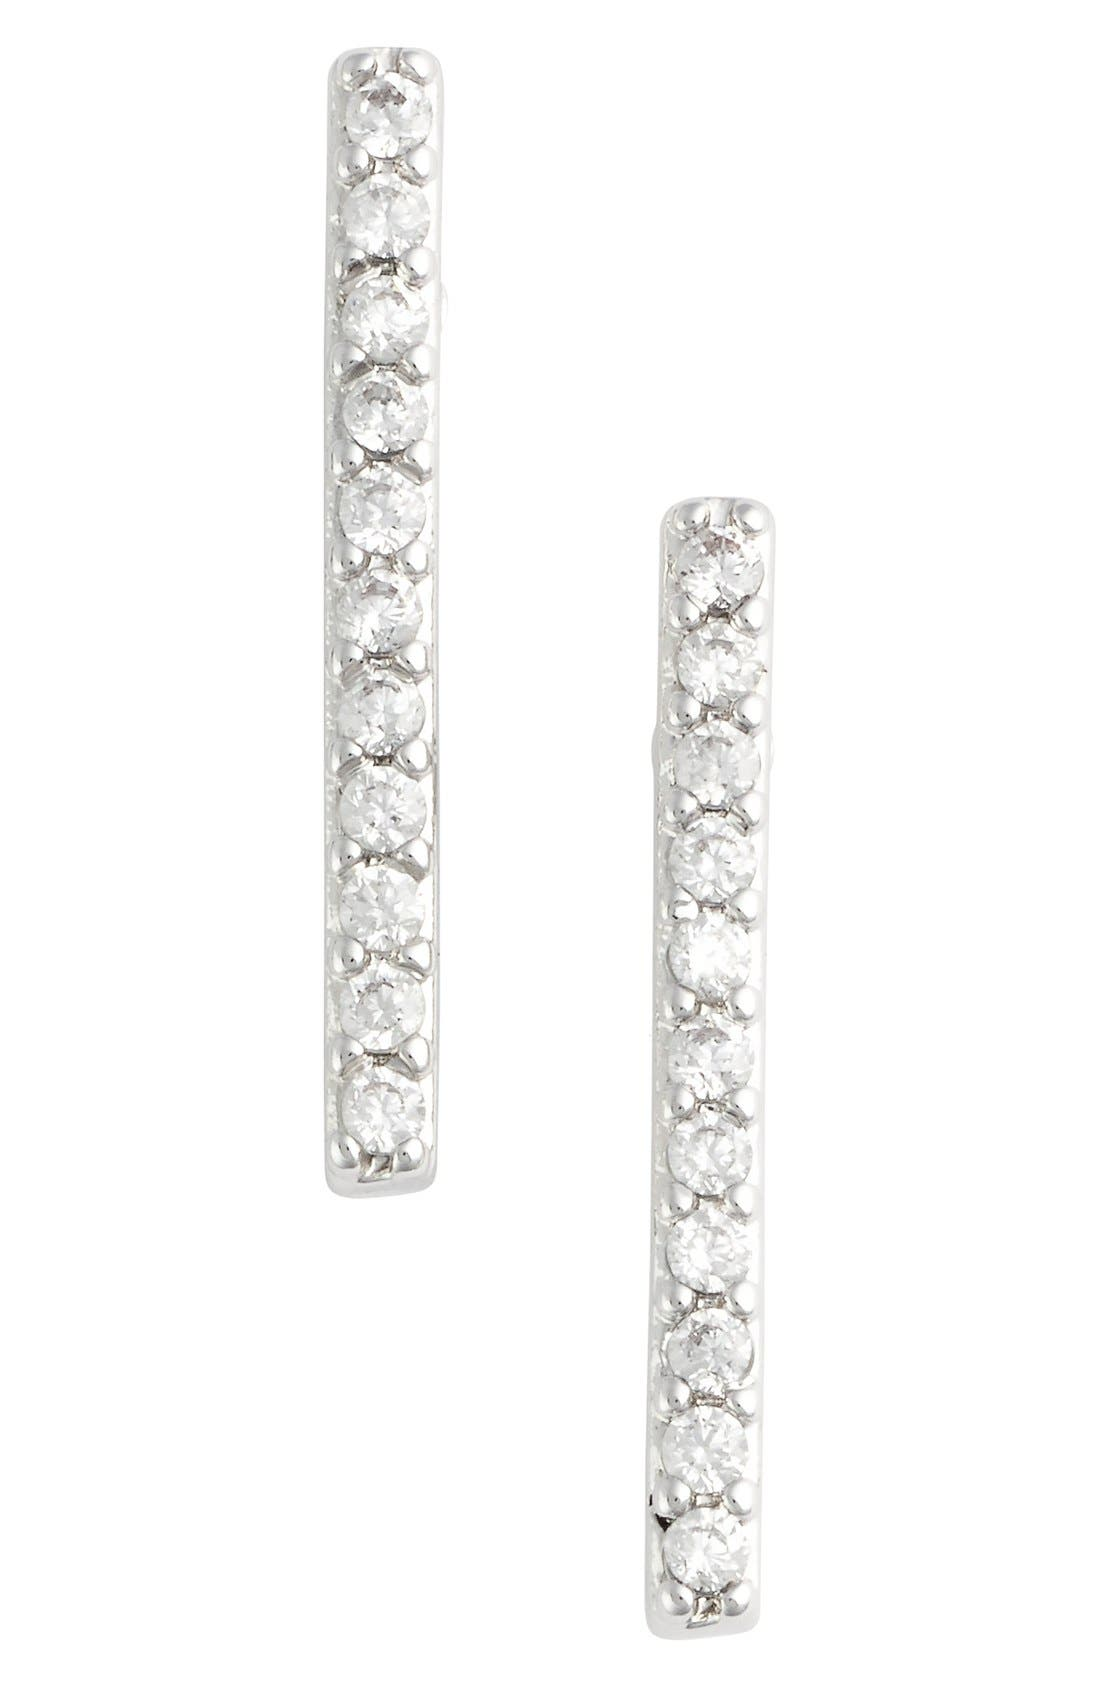 JULES SMITH Micro Pavé Bar Stud Earrings